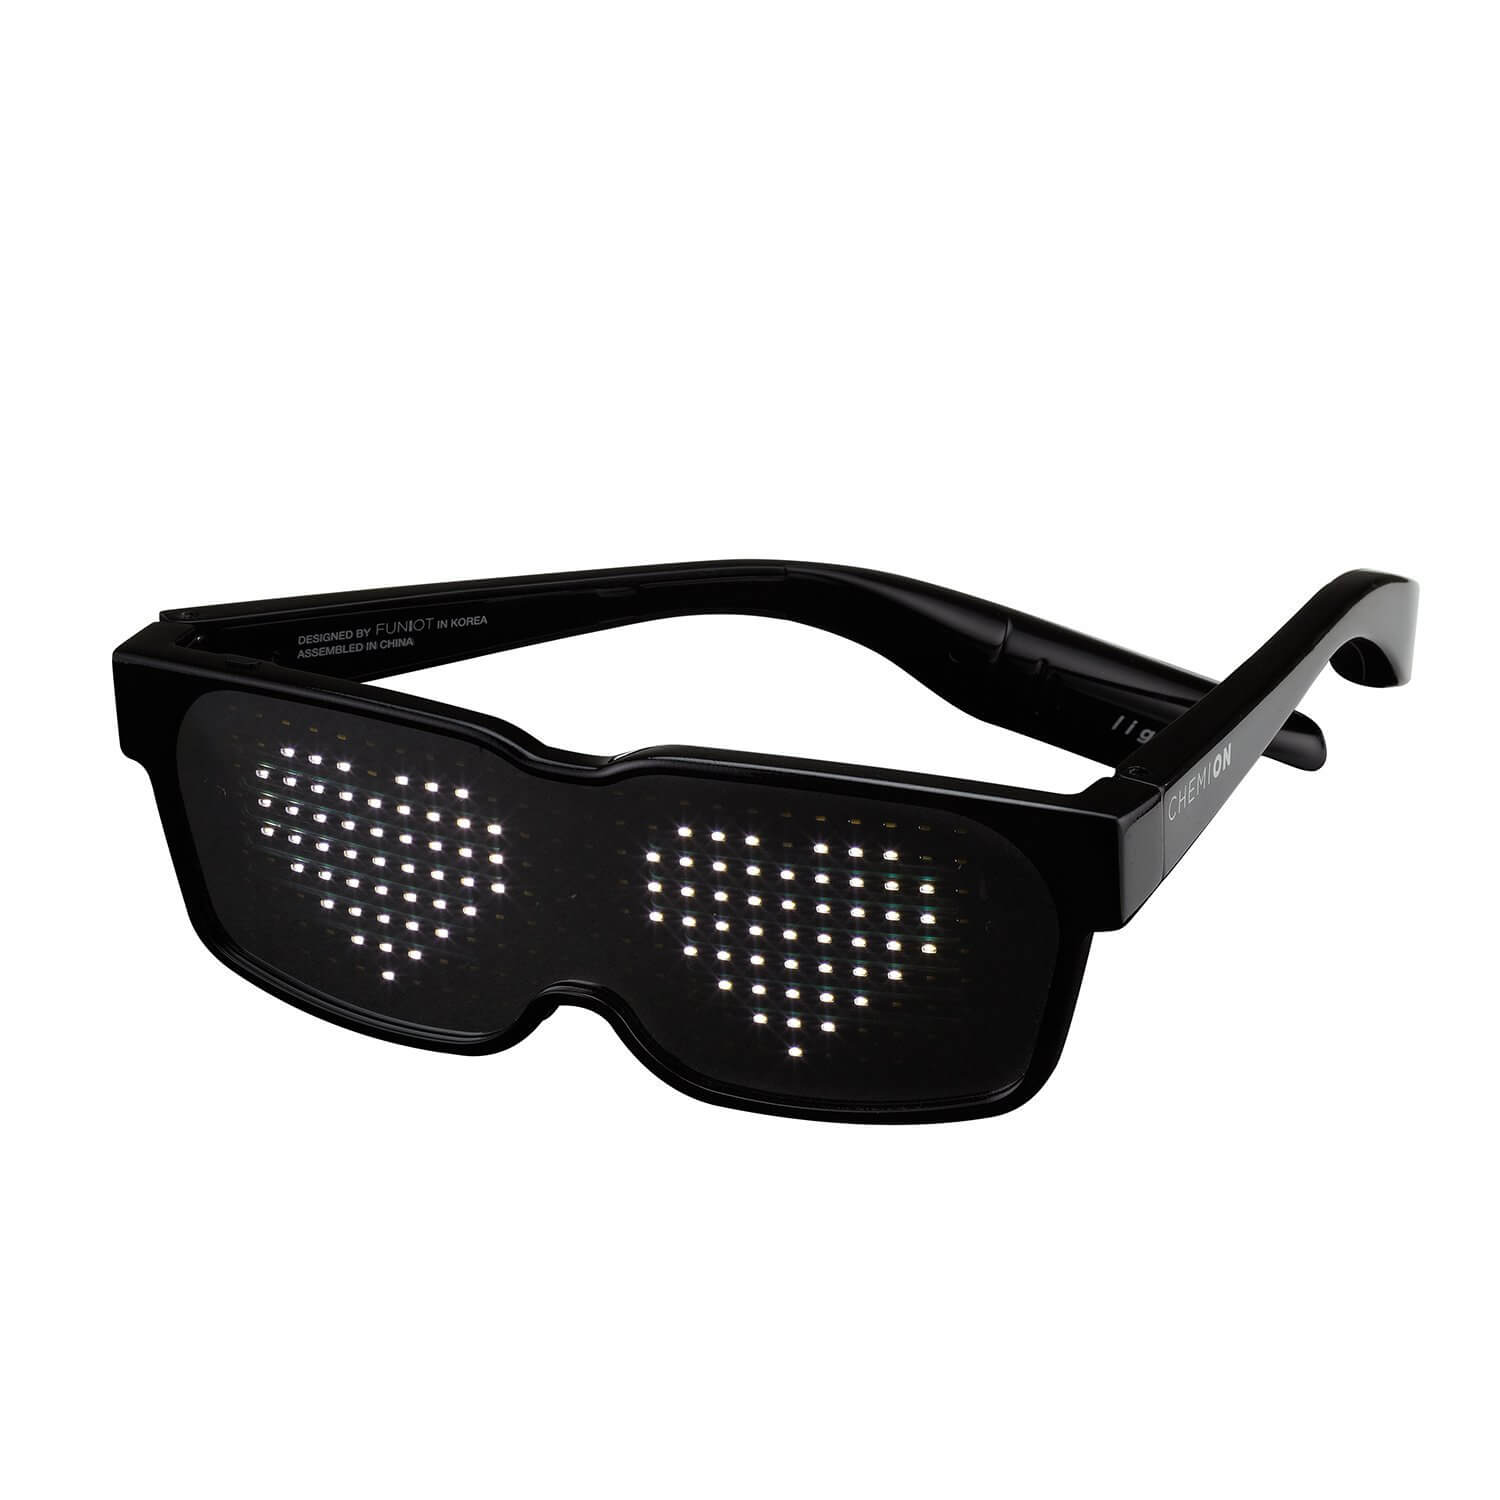 Buy CHEMION LED Bluetooth Glasses - FREE 2-3 Day Shipping!